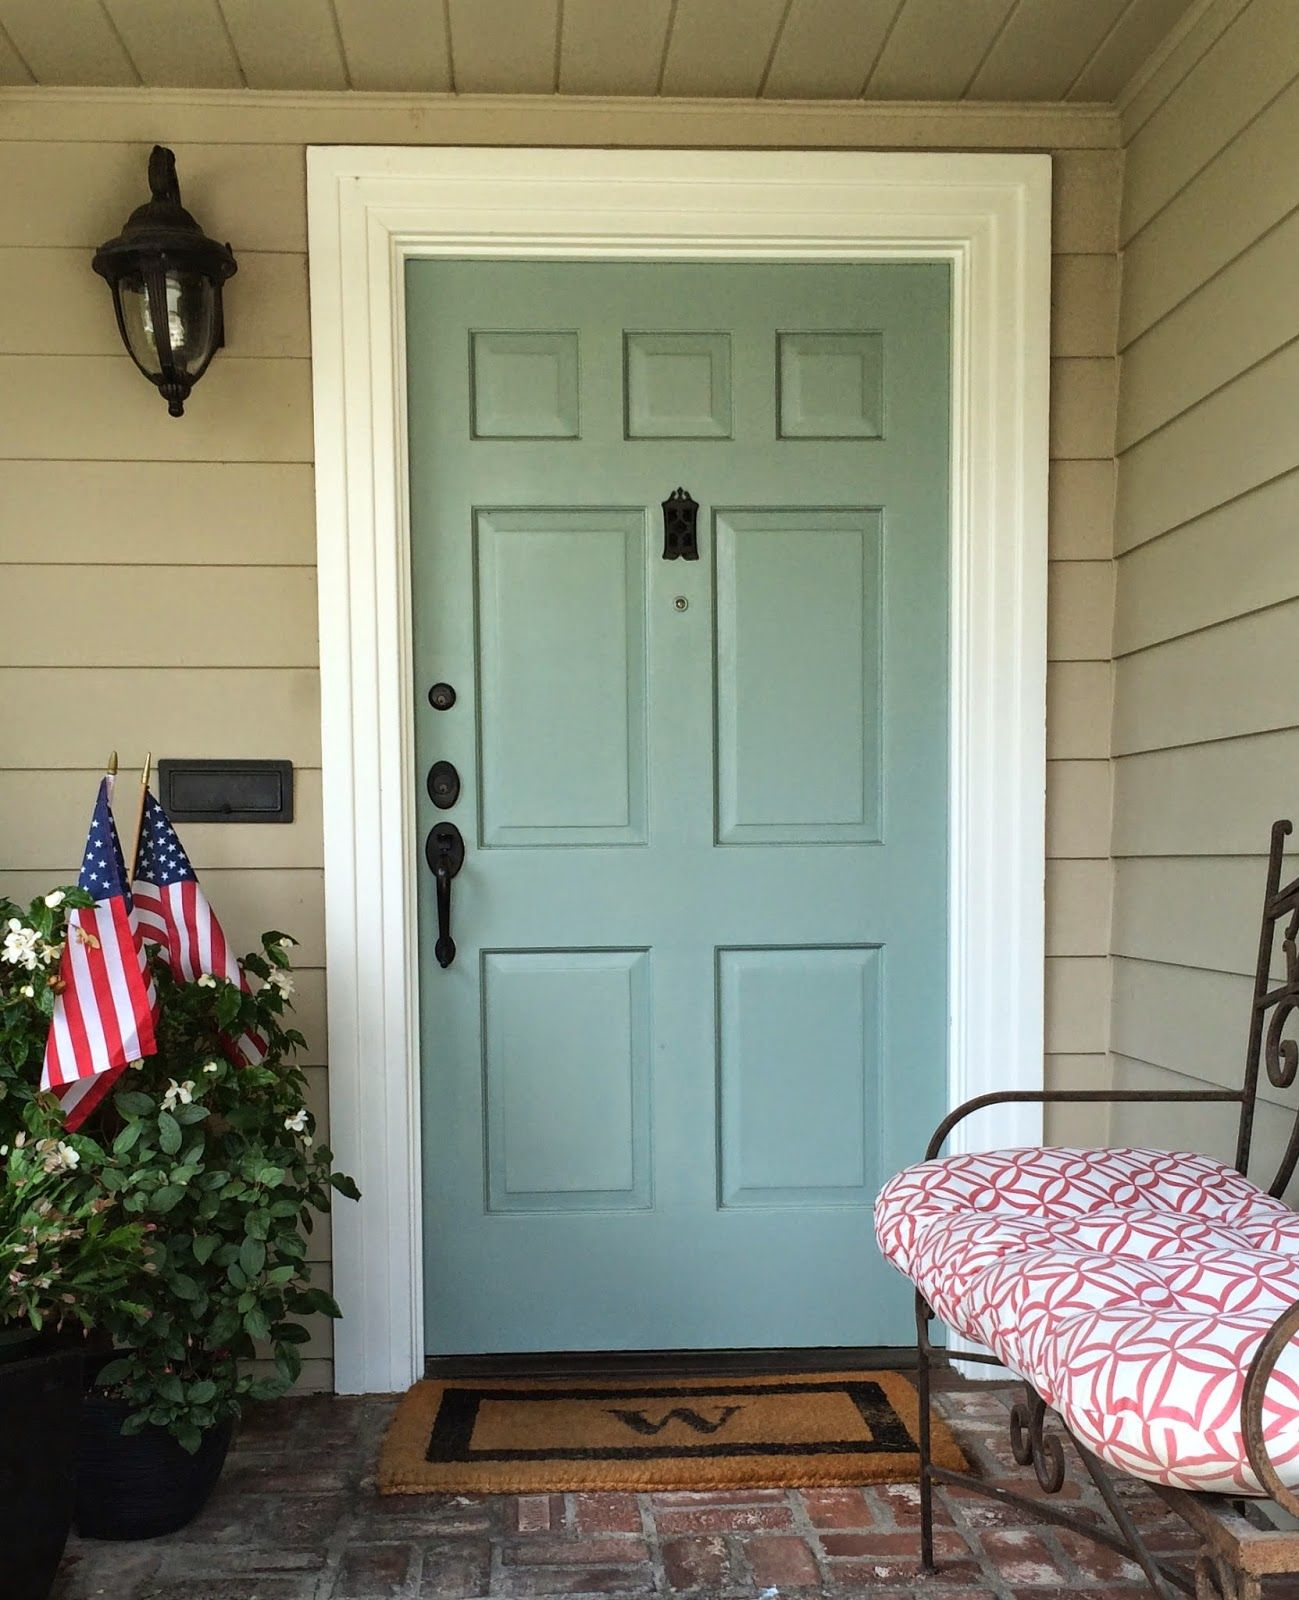 Sherri Cassara Designs A Few Great Doors Colors Stratton Blue Hc 142 Benjamin Moore For The